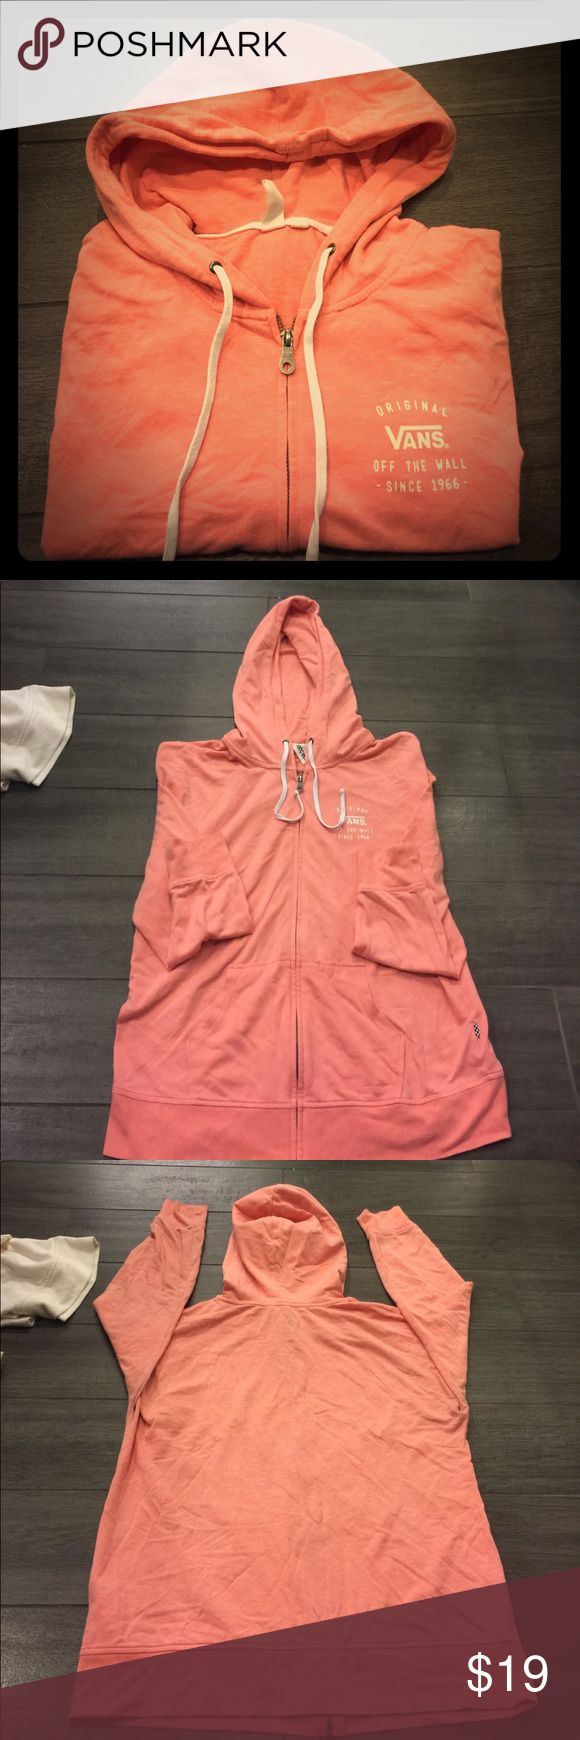 PRE-LOVED CORAL VANS FRONT ZIP HOODIE Premium Soft Cotton!! Roomy yet flattering fit and adorable, unique, fun color. Lightly worn a handful of times with tons of love left in her ❤️ Vans Tops Sweatshirts & Hoodies